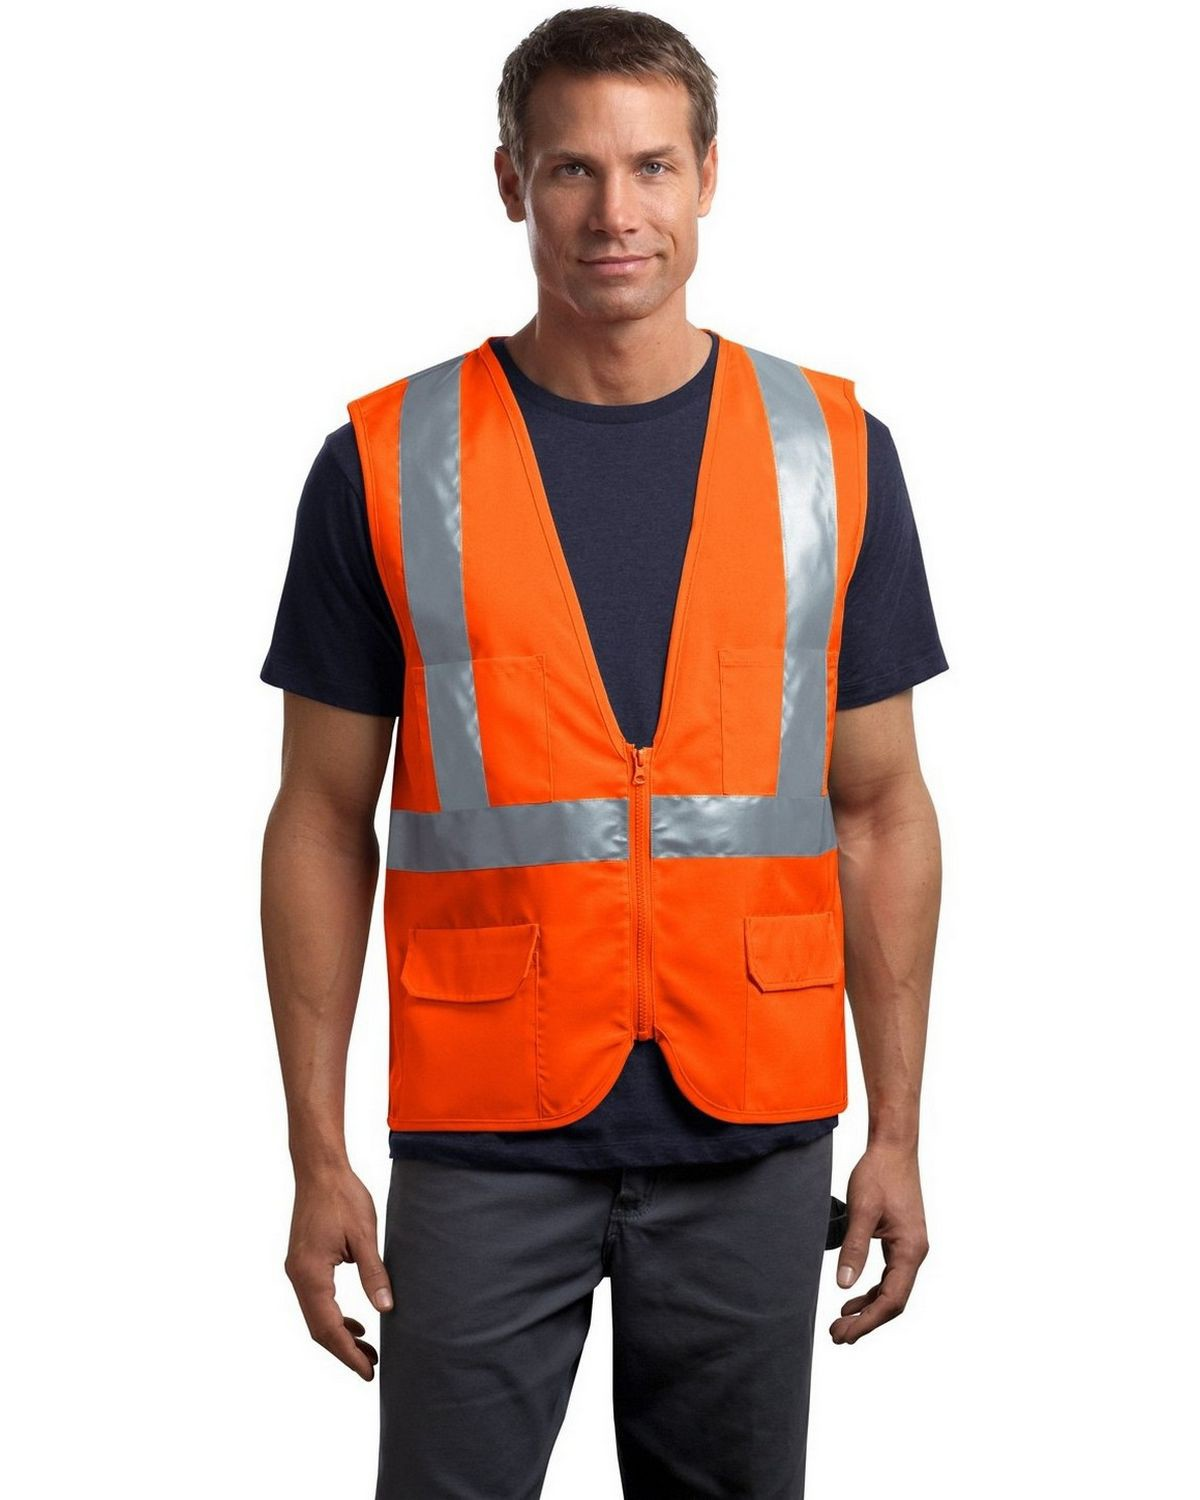 Security & Protection Workplace Safety Supplies High Visibility Safety Work Vest Breathable Mesh Vest Crease-Resistance